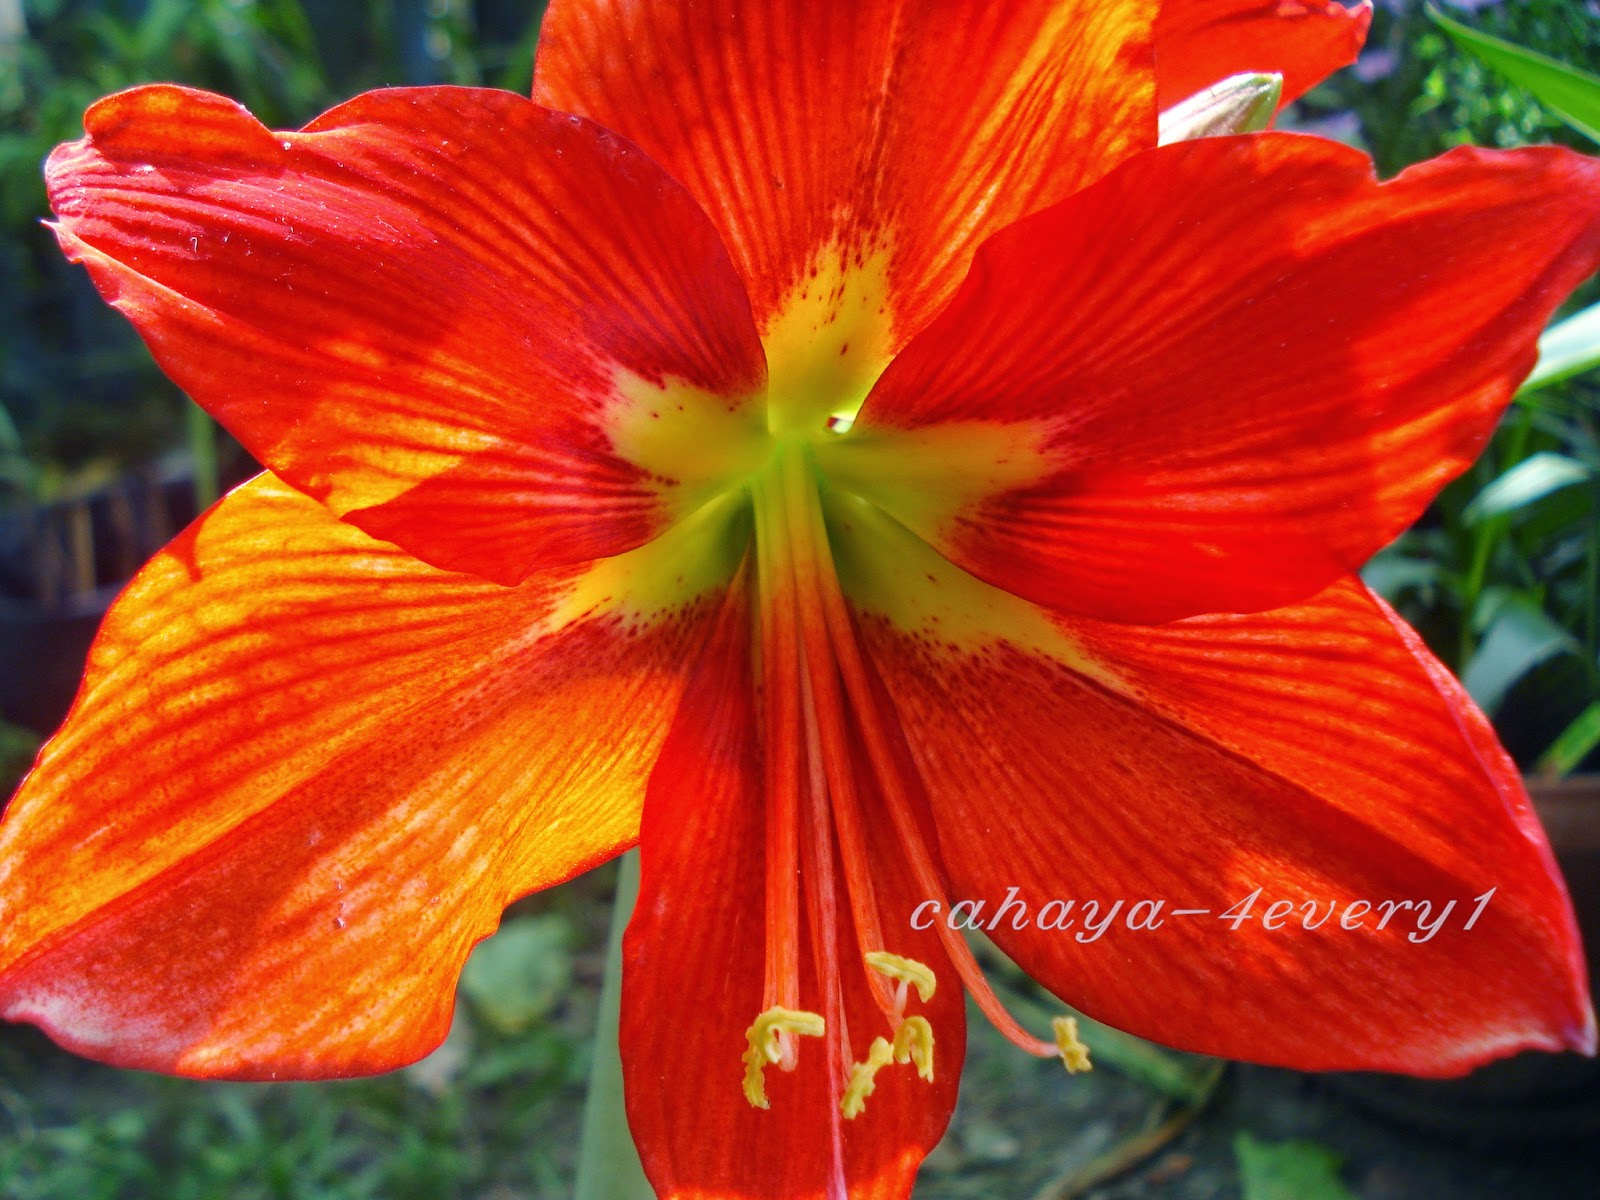 Red orange amarylis flower in bloom